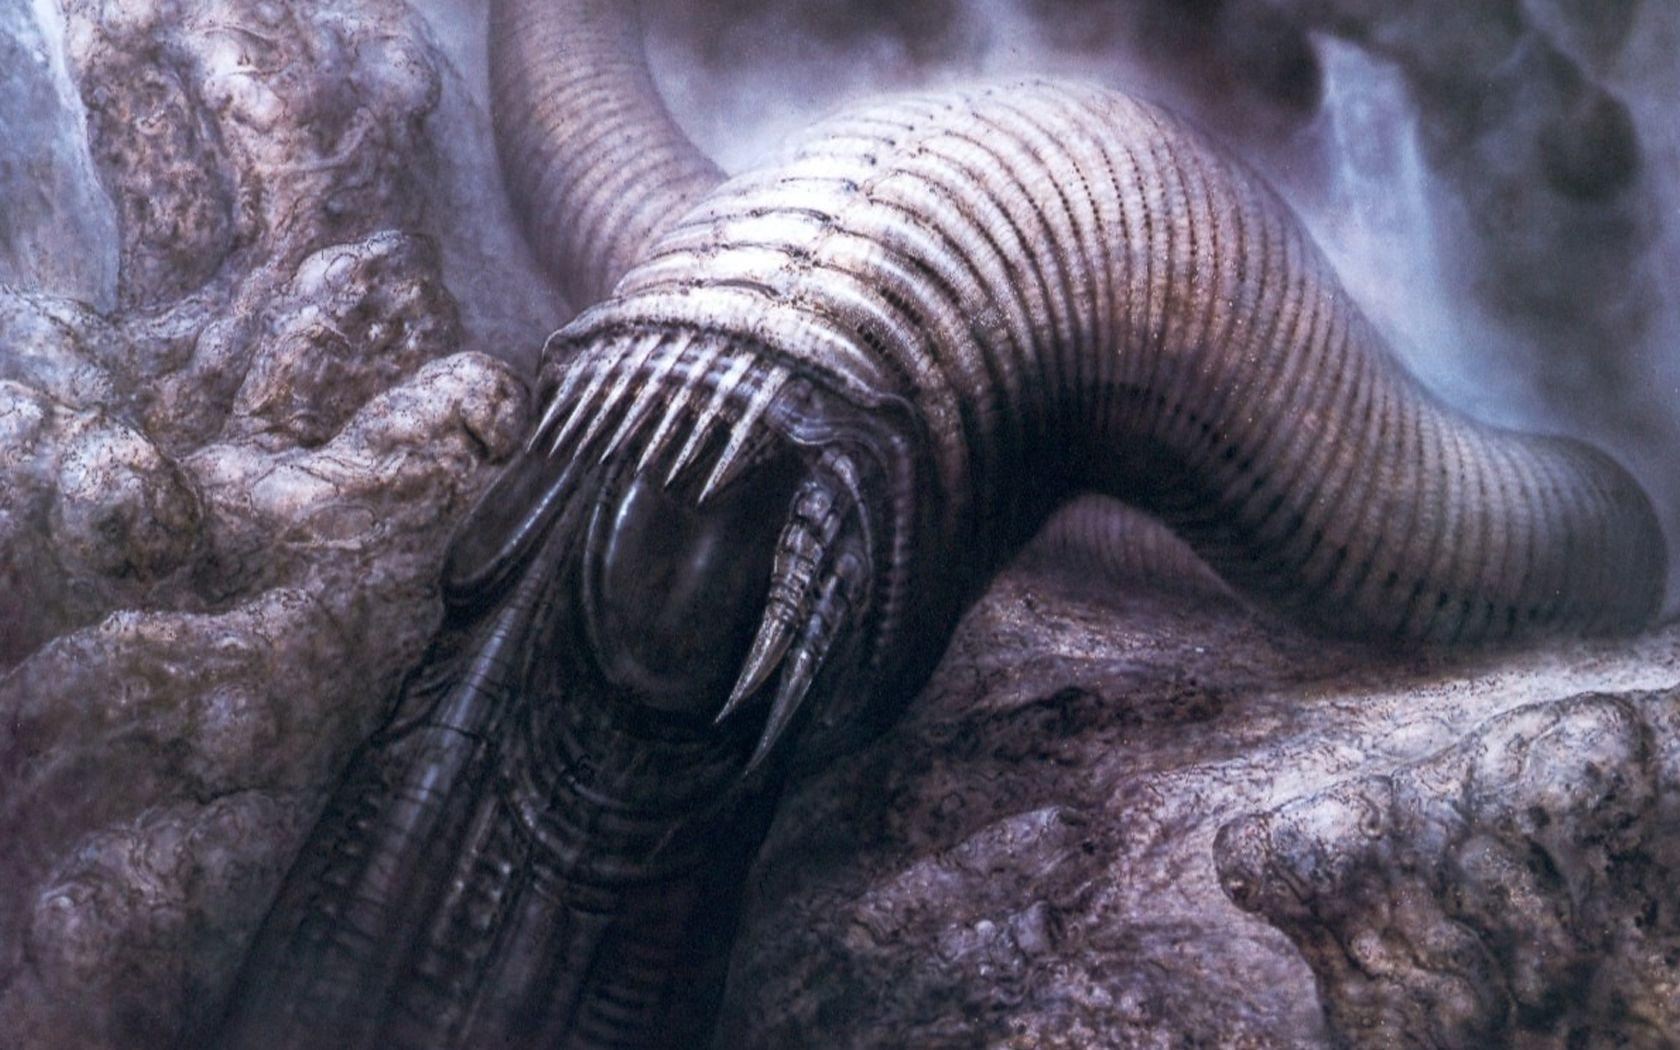 H.R. Giger Wallpapers - Wallpaper Cave